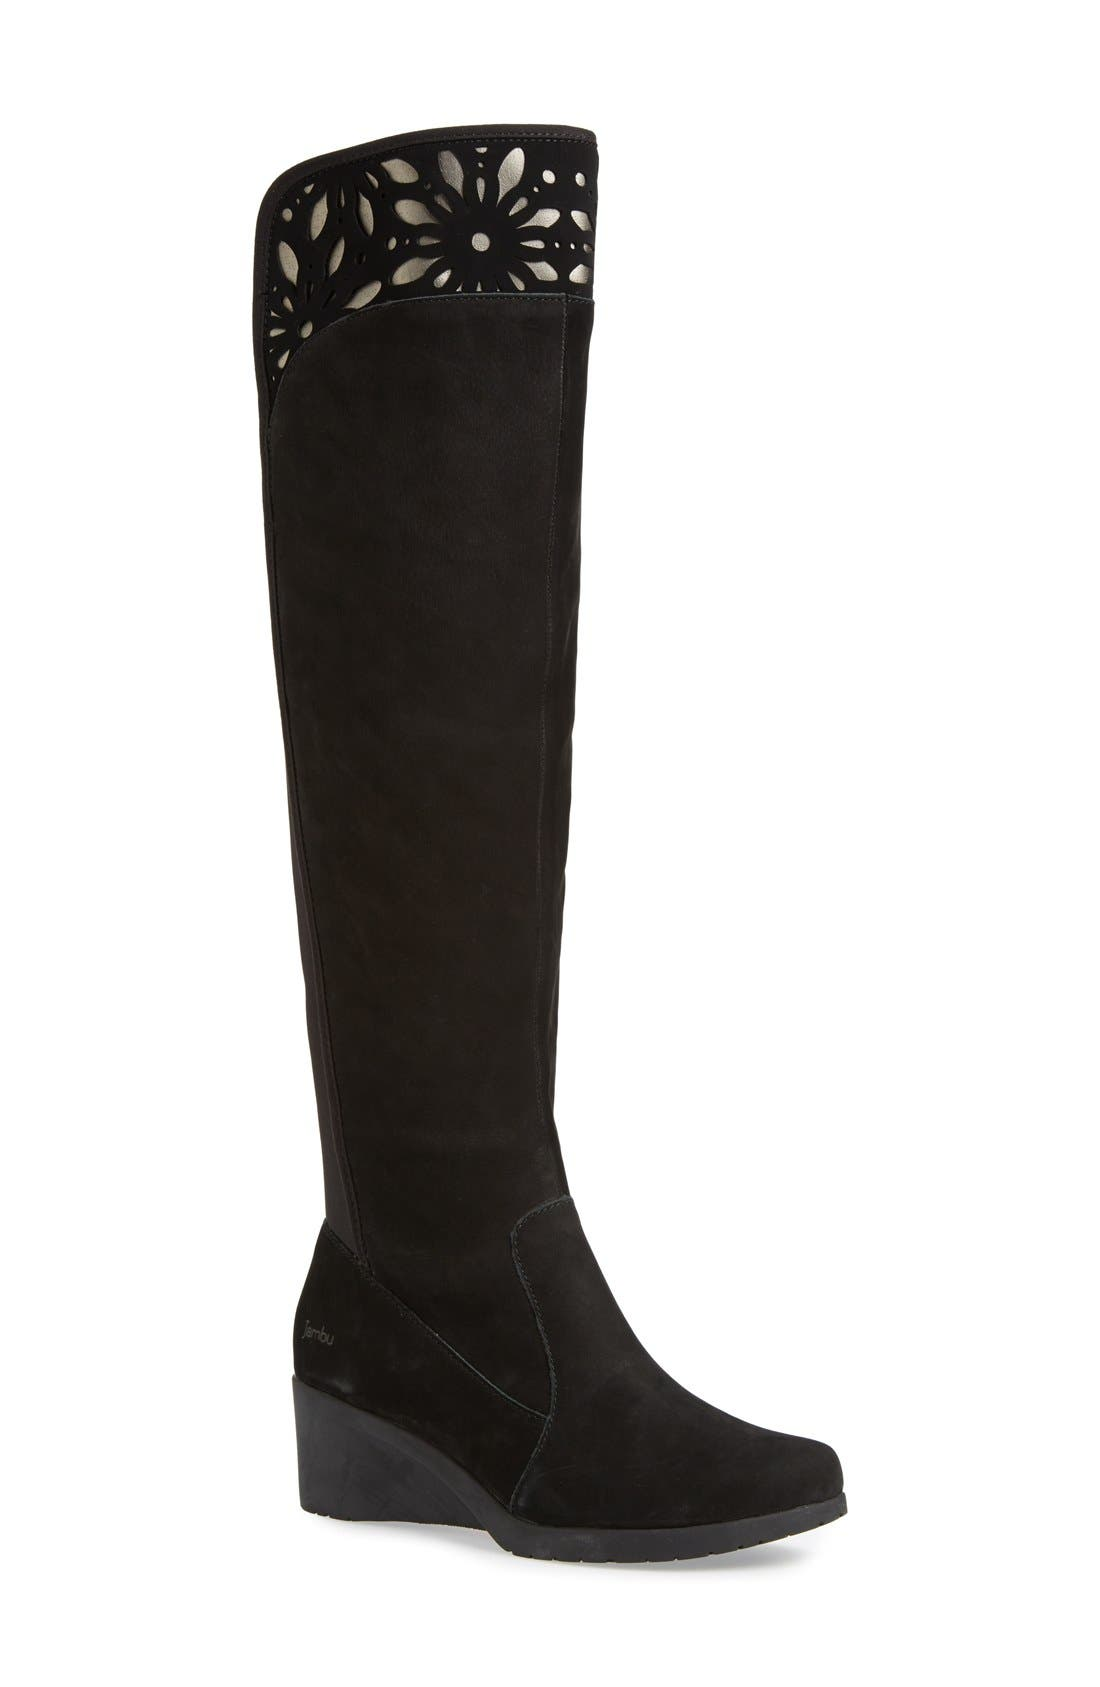 Alternate Image 1 Selected - Jambu 'Natalia' Cutout Detail Water Resistant Over the Knee Boot (Women)